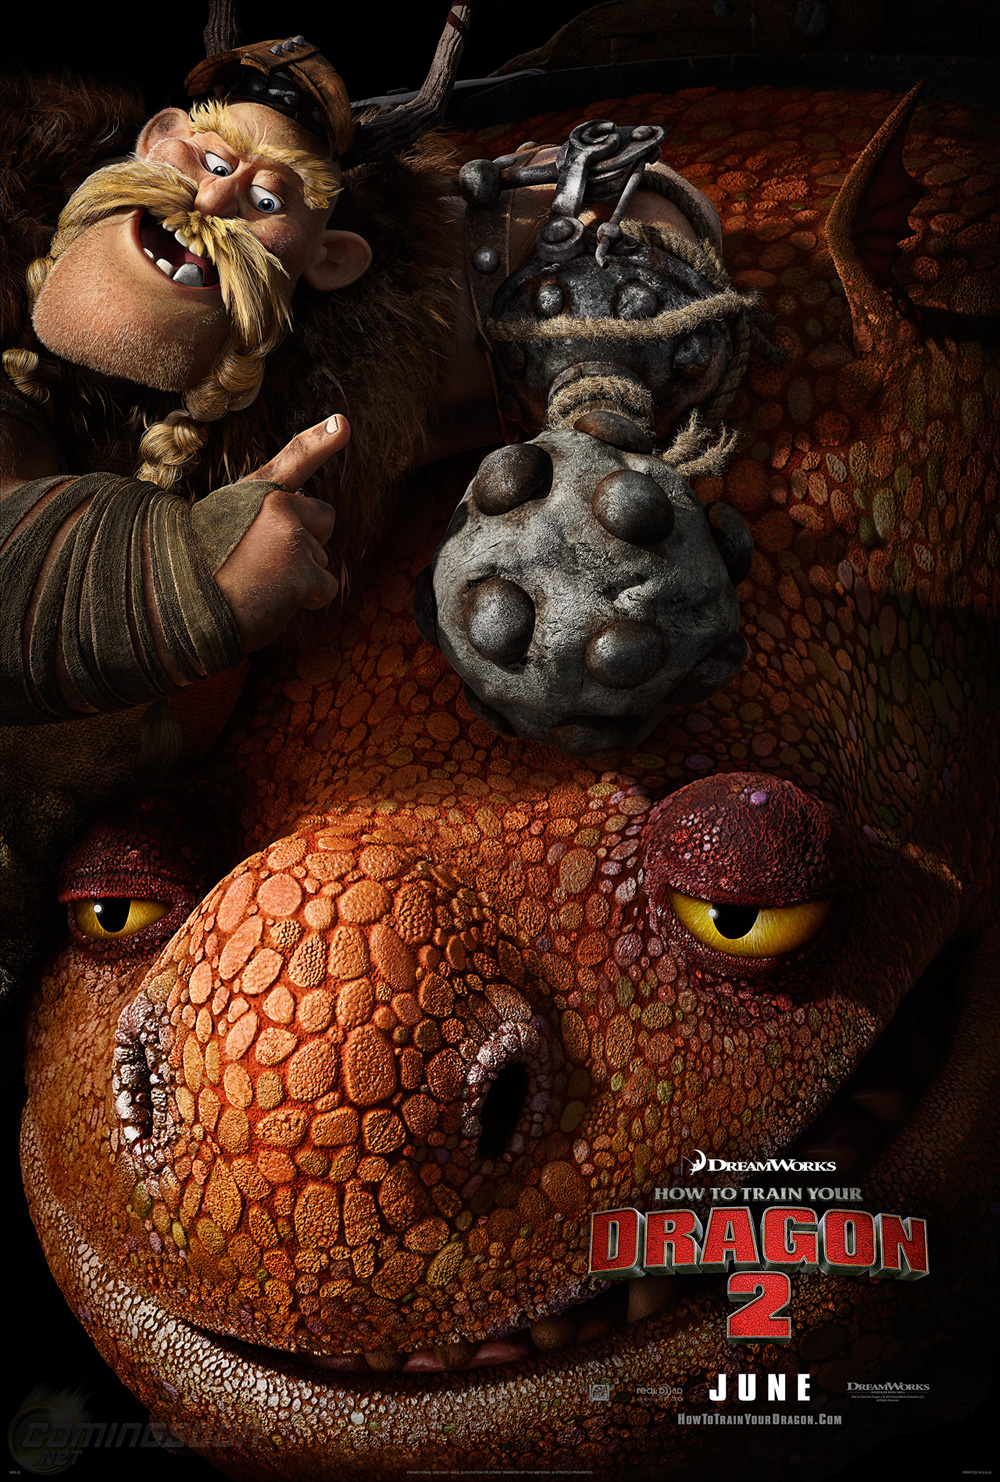 How To Train Your Dragon 2 Character Poster €� Gobber And Grump